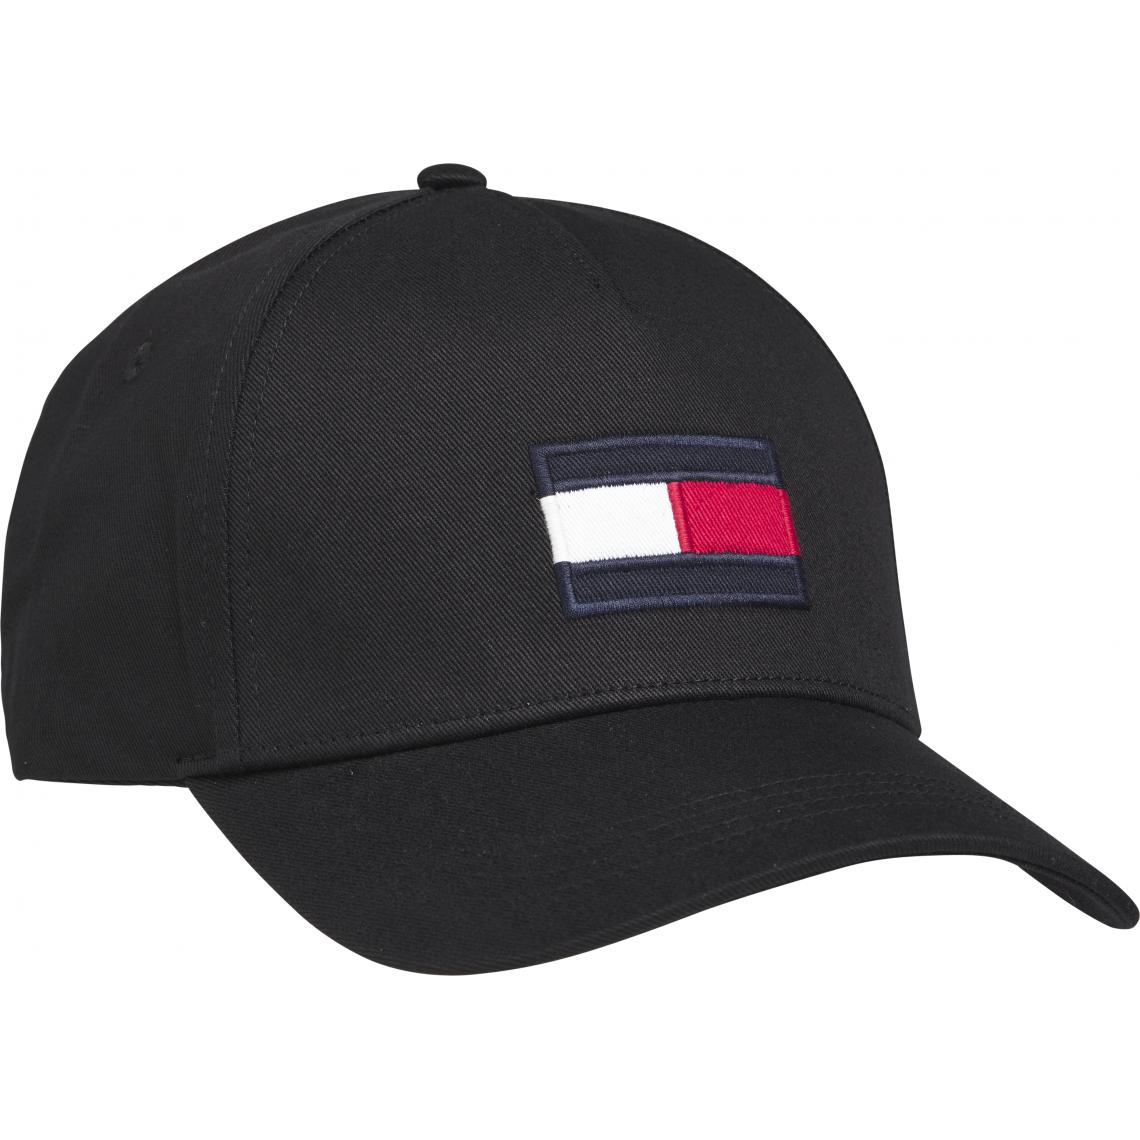 Casquette Tommy Hilfiger drapeau - Tommy Hilfiger Maroquinerie - Modalova